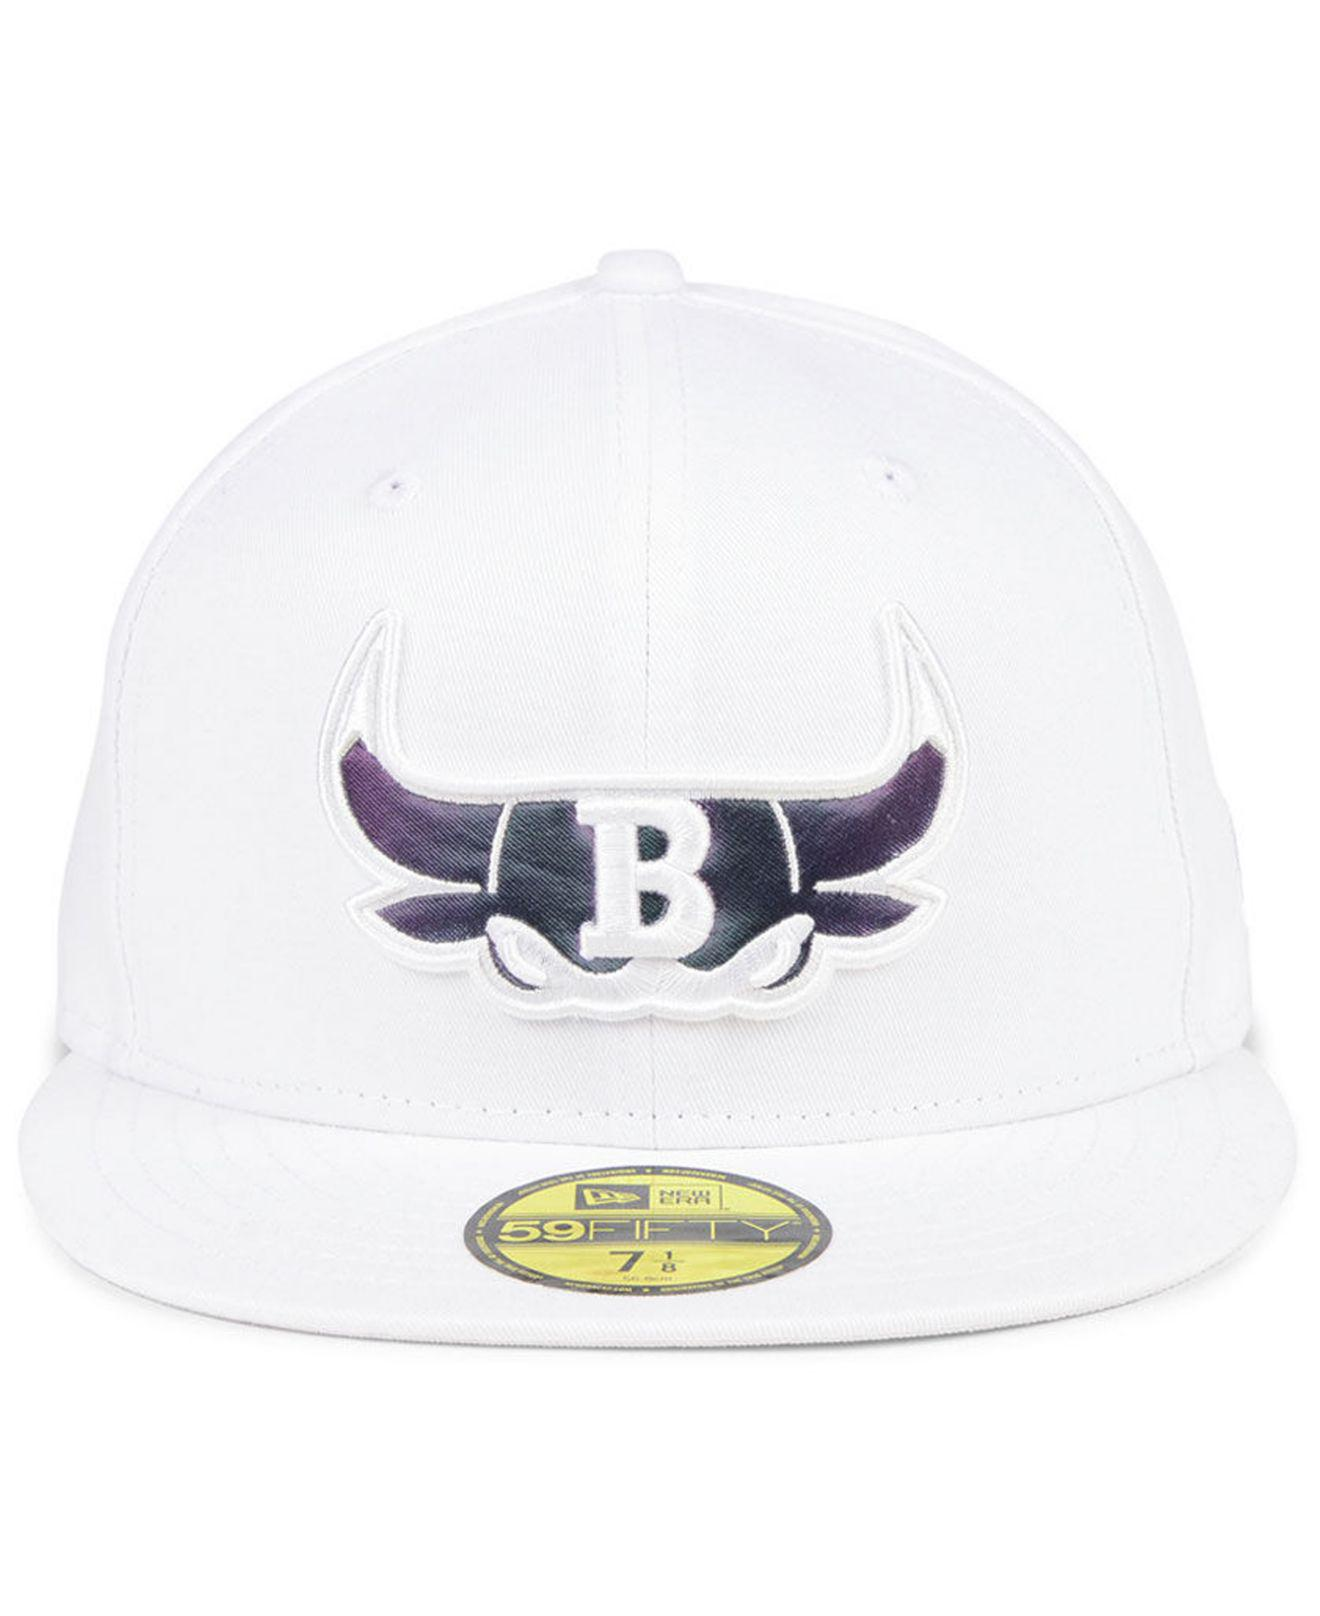 8e88bf13cb1 ... hot lyst ktz chicago bulls iridescent combo 59fifty fitted cap in white  for men 5fd43 b7c31